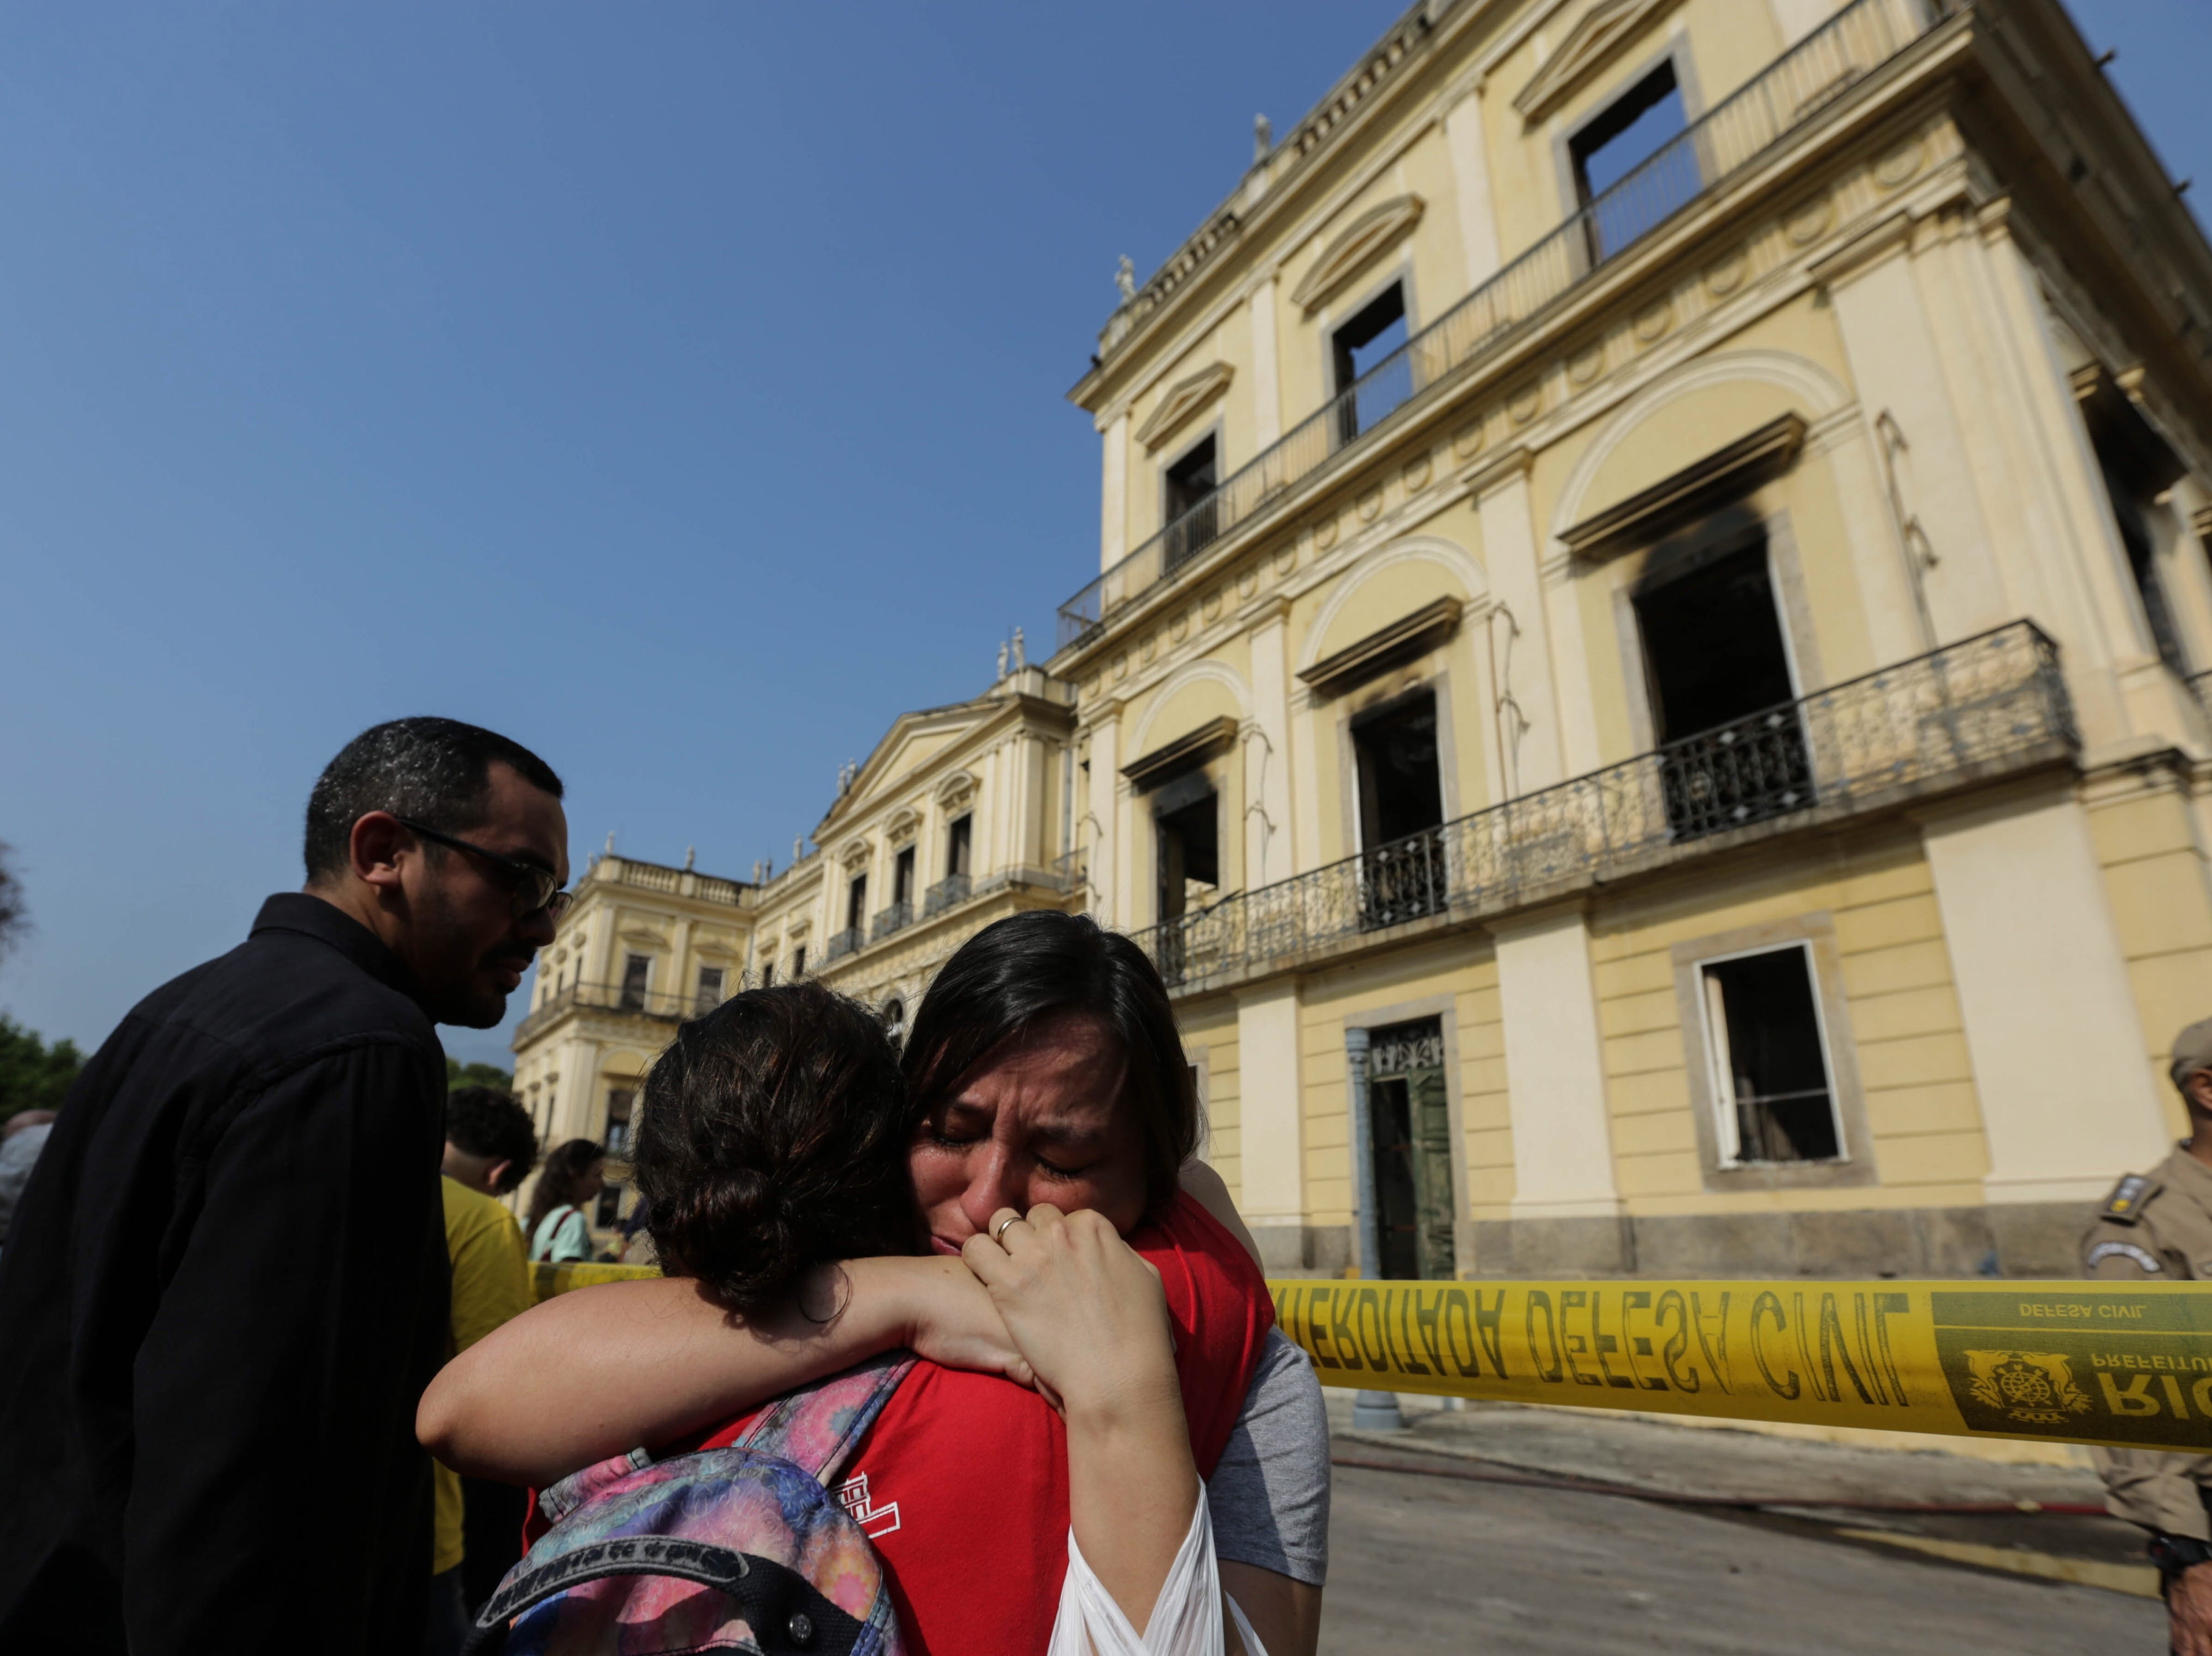 epaselect epa06994608 Civil servants of the National Museum of Rio de Janeiro cry outside the National Museum of Rio de Janeiro, Brazil, 03 September 2018, after after fire destroyed the building on 02 September 2018. The National Museum of Rio de Janeiro, is the oldest in Brazil and  housed some 20 million items, including the skeleton of 'the first American', stuffed animals, mummies and dozens of dinosaur bones.